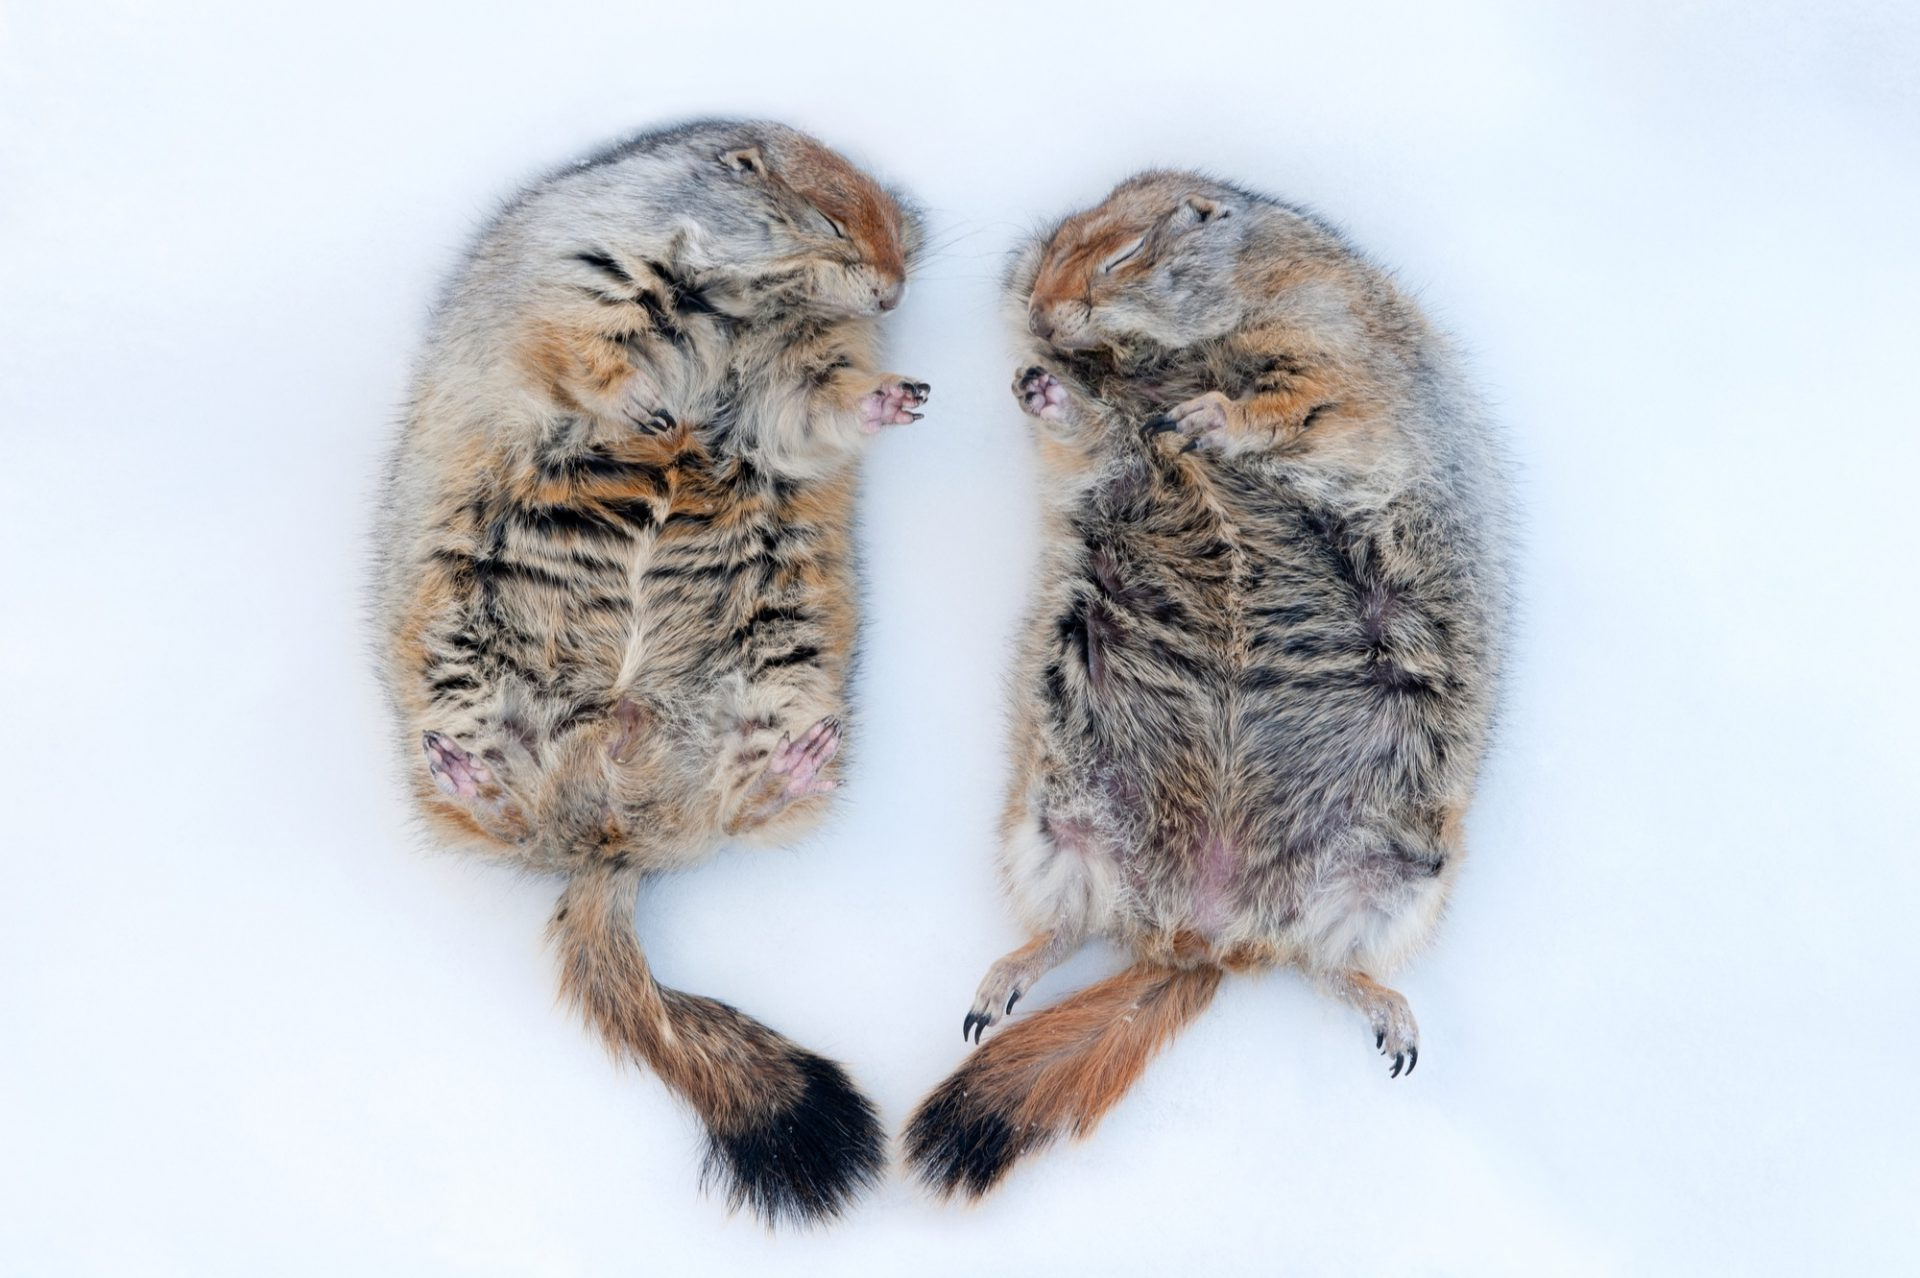 Photo: Hibernating Arctic ground squirrels (Spermopilus parryii) at the University of Alaska at Fairbanks.